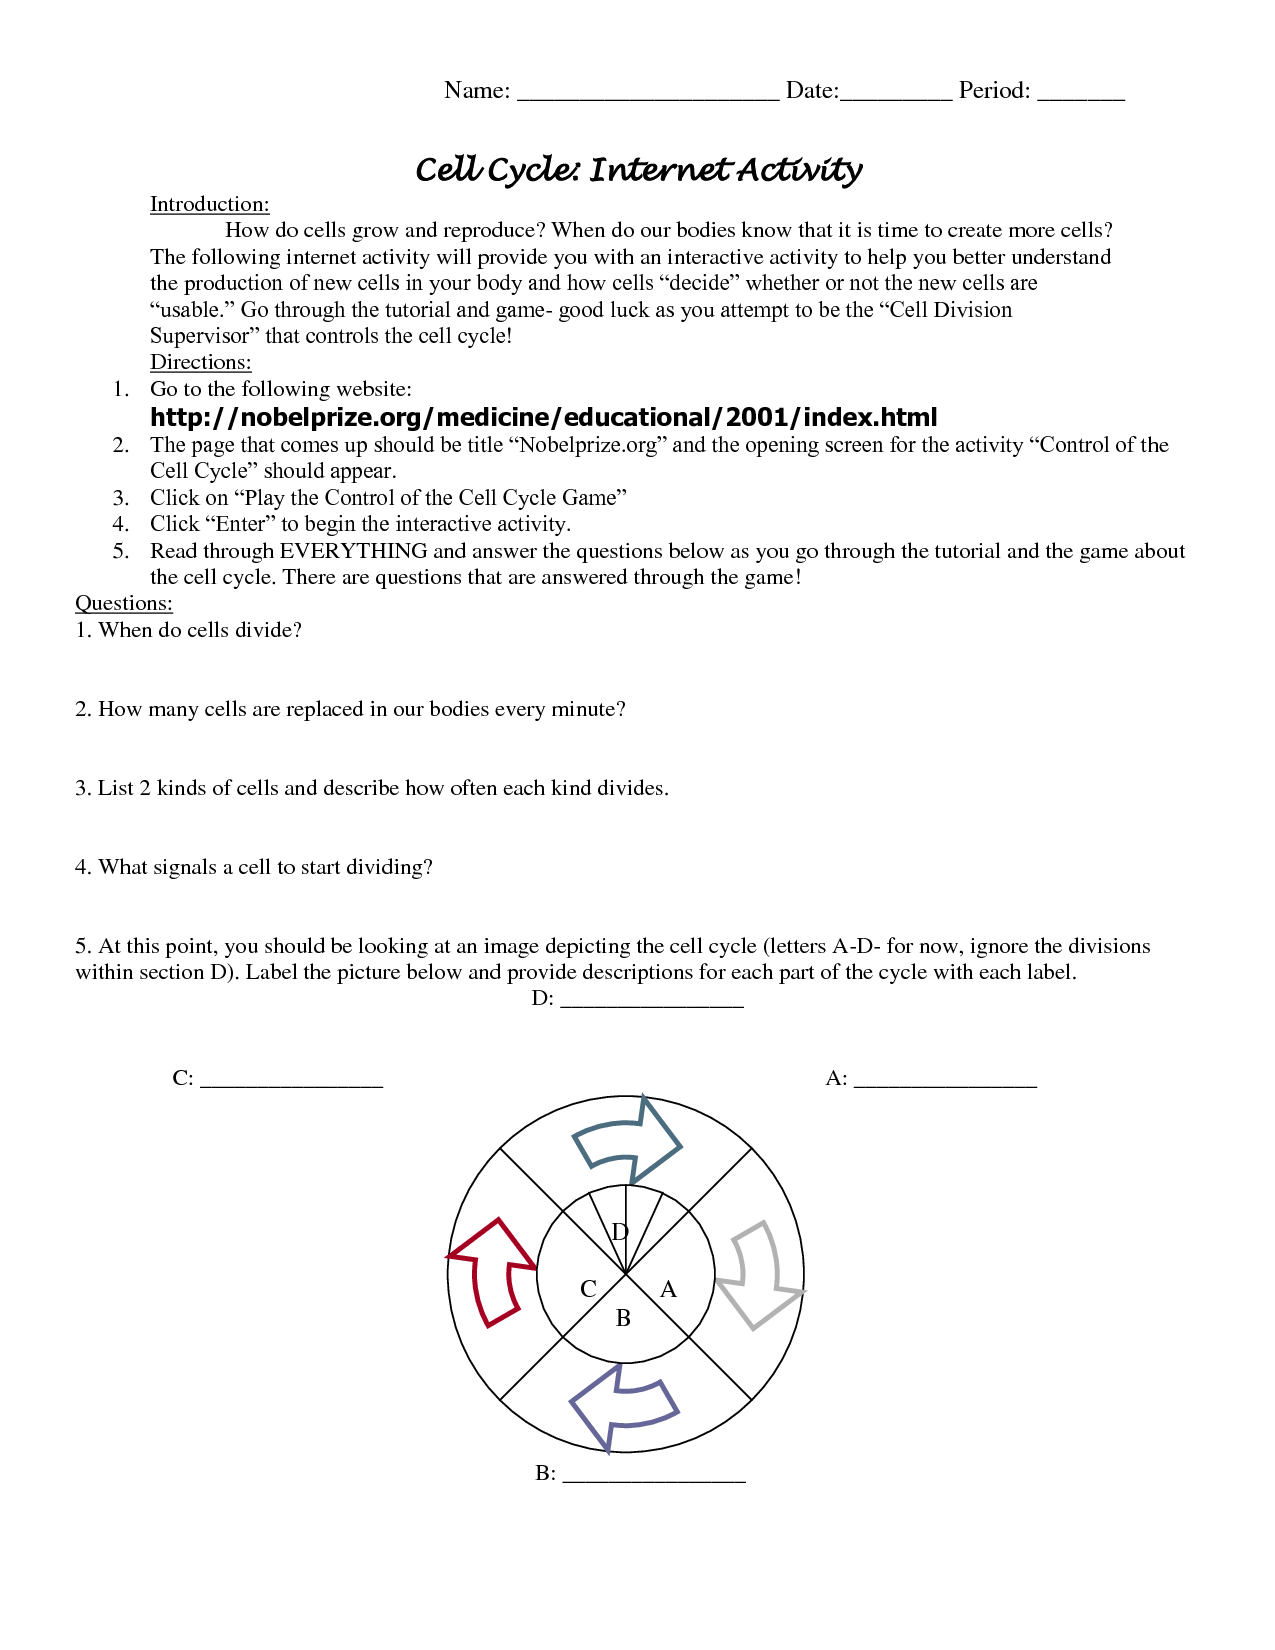 Mitosis And Cancer Worksheet Cell Division And The Cell Cycle Worksheet Answers Worksheet